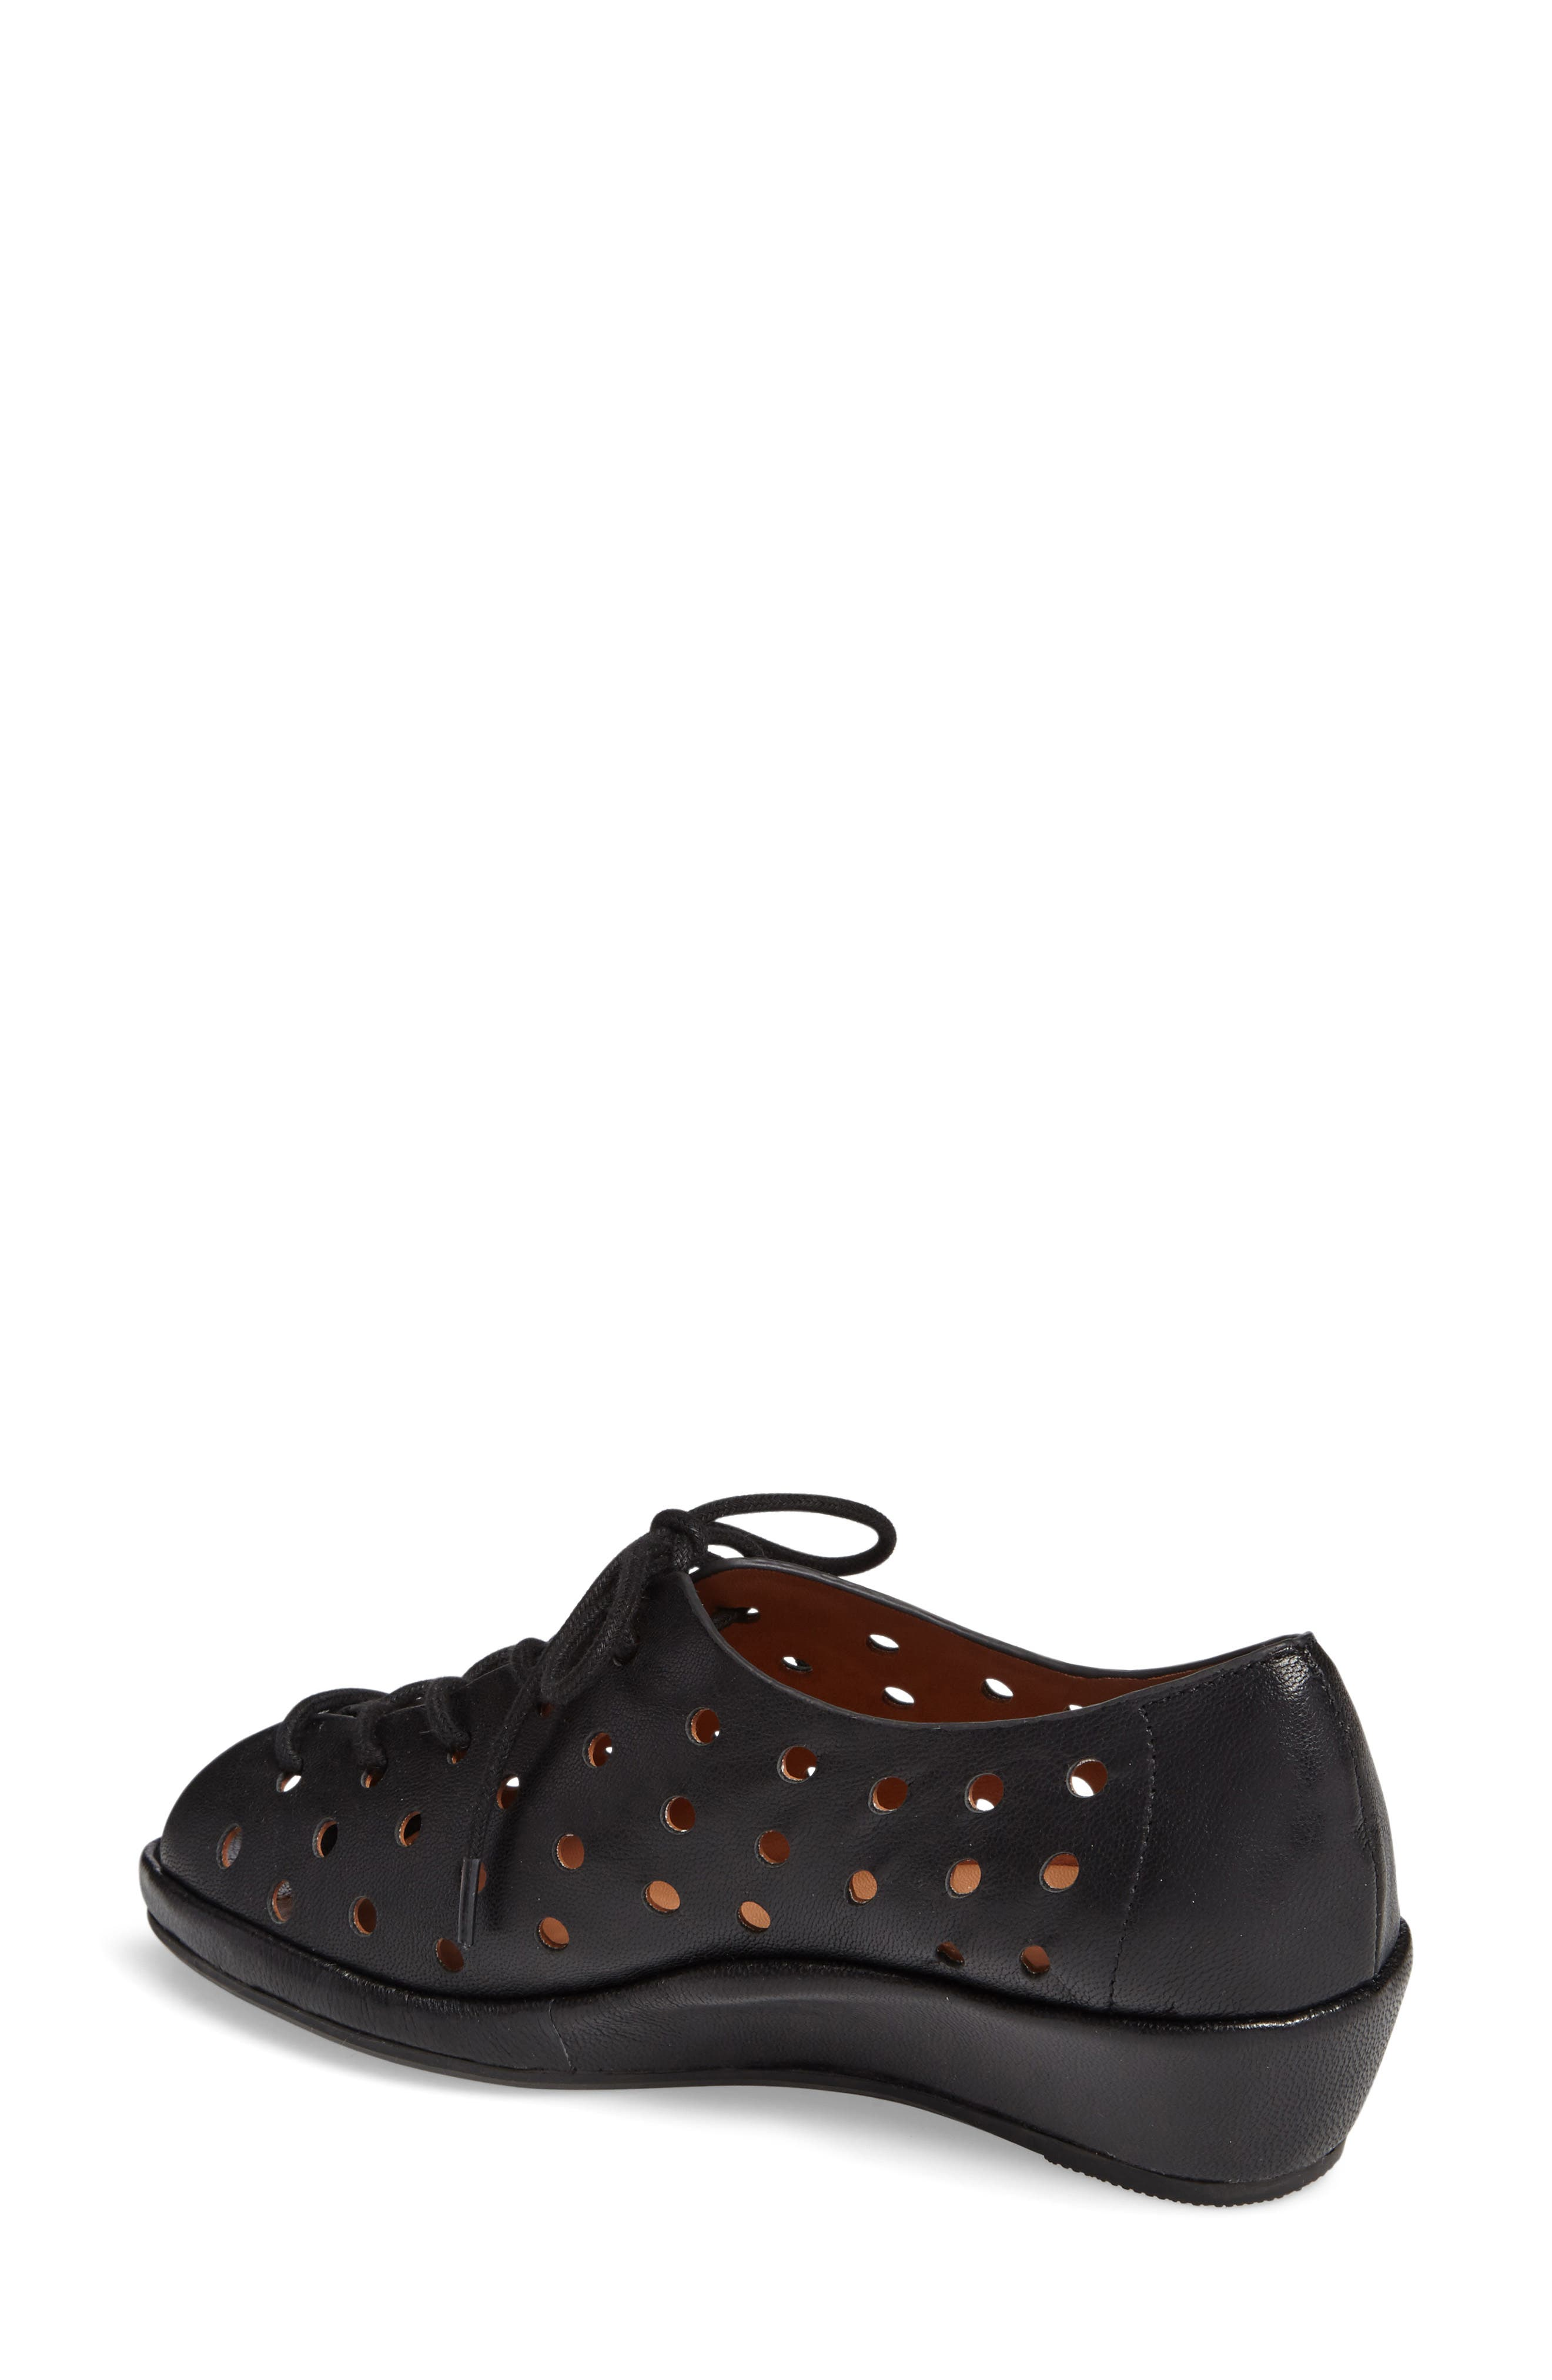 Boccoo Perforated Lace-Up Oxford,                             Alternate thumbnail 2, color,                             001